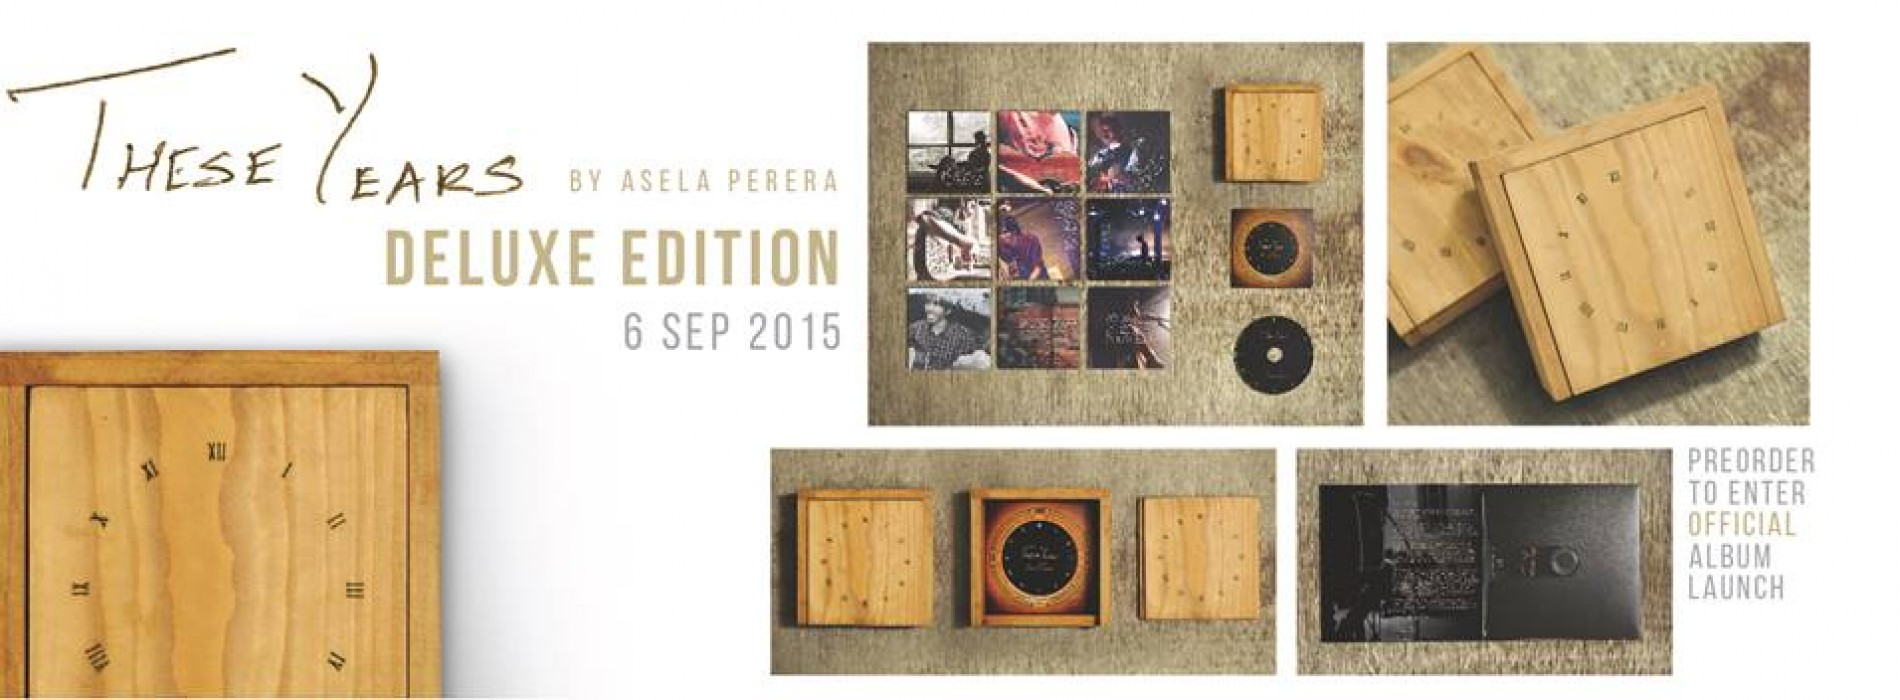 """Pre-Order Your Copy Of """"These Years"""" By Asela Perera"""